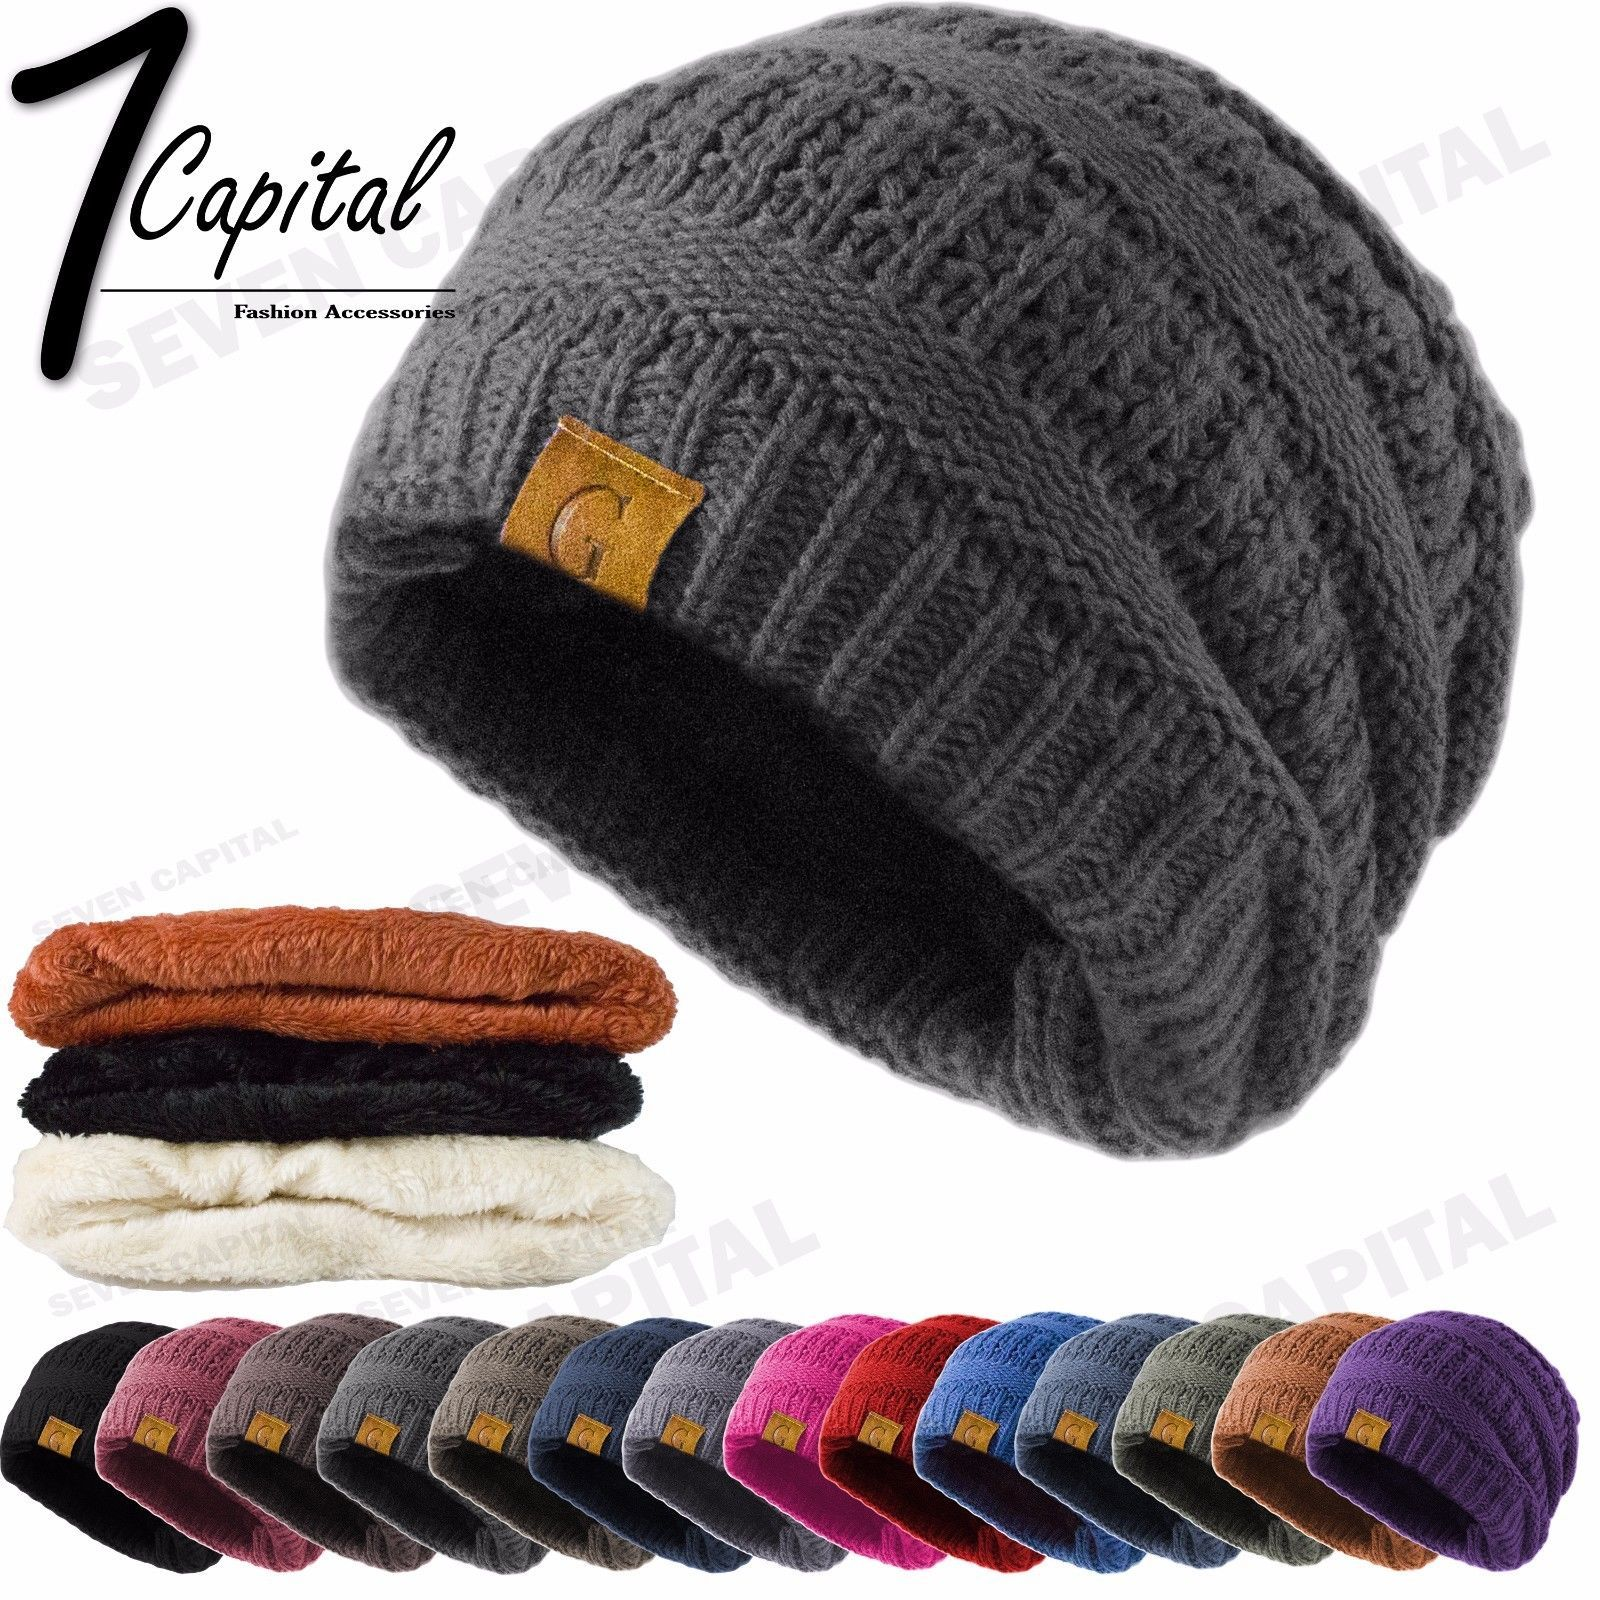 492ded718 adidas Pine Knot Beanie in 2019 | Products | Grey beanie, Beanie, Hats